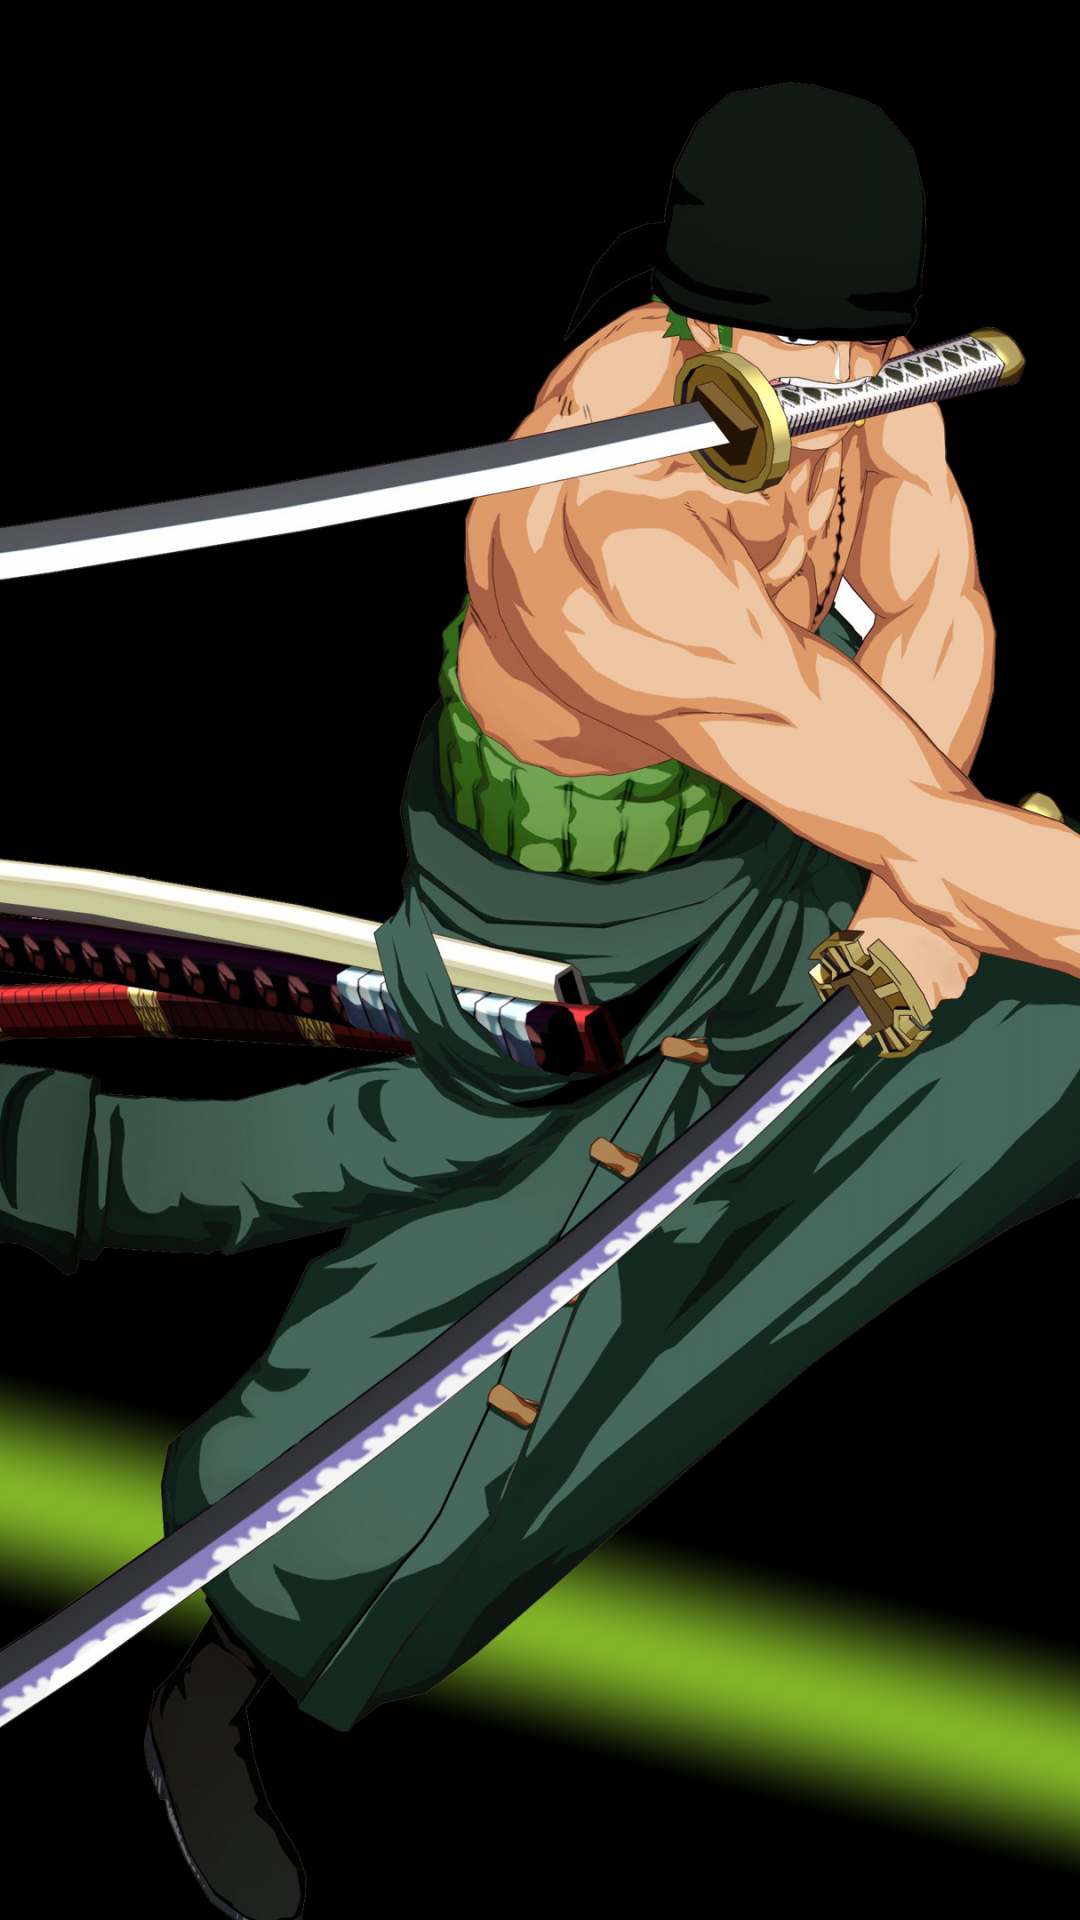 Free Download Zoro One Piece 4k Ultra Hd Wallpapers 3840x2160 For Your Desktop Mobile Tablet Explore 94 Roronoa Zoro Hd Wallpapers Roronoa Zoro Wallpapers Roronoa Zoro Hd Wallpapers Zoro Wallpaper Hd